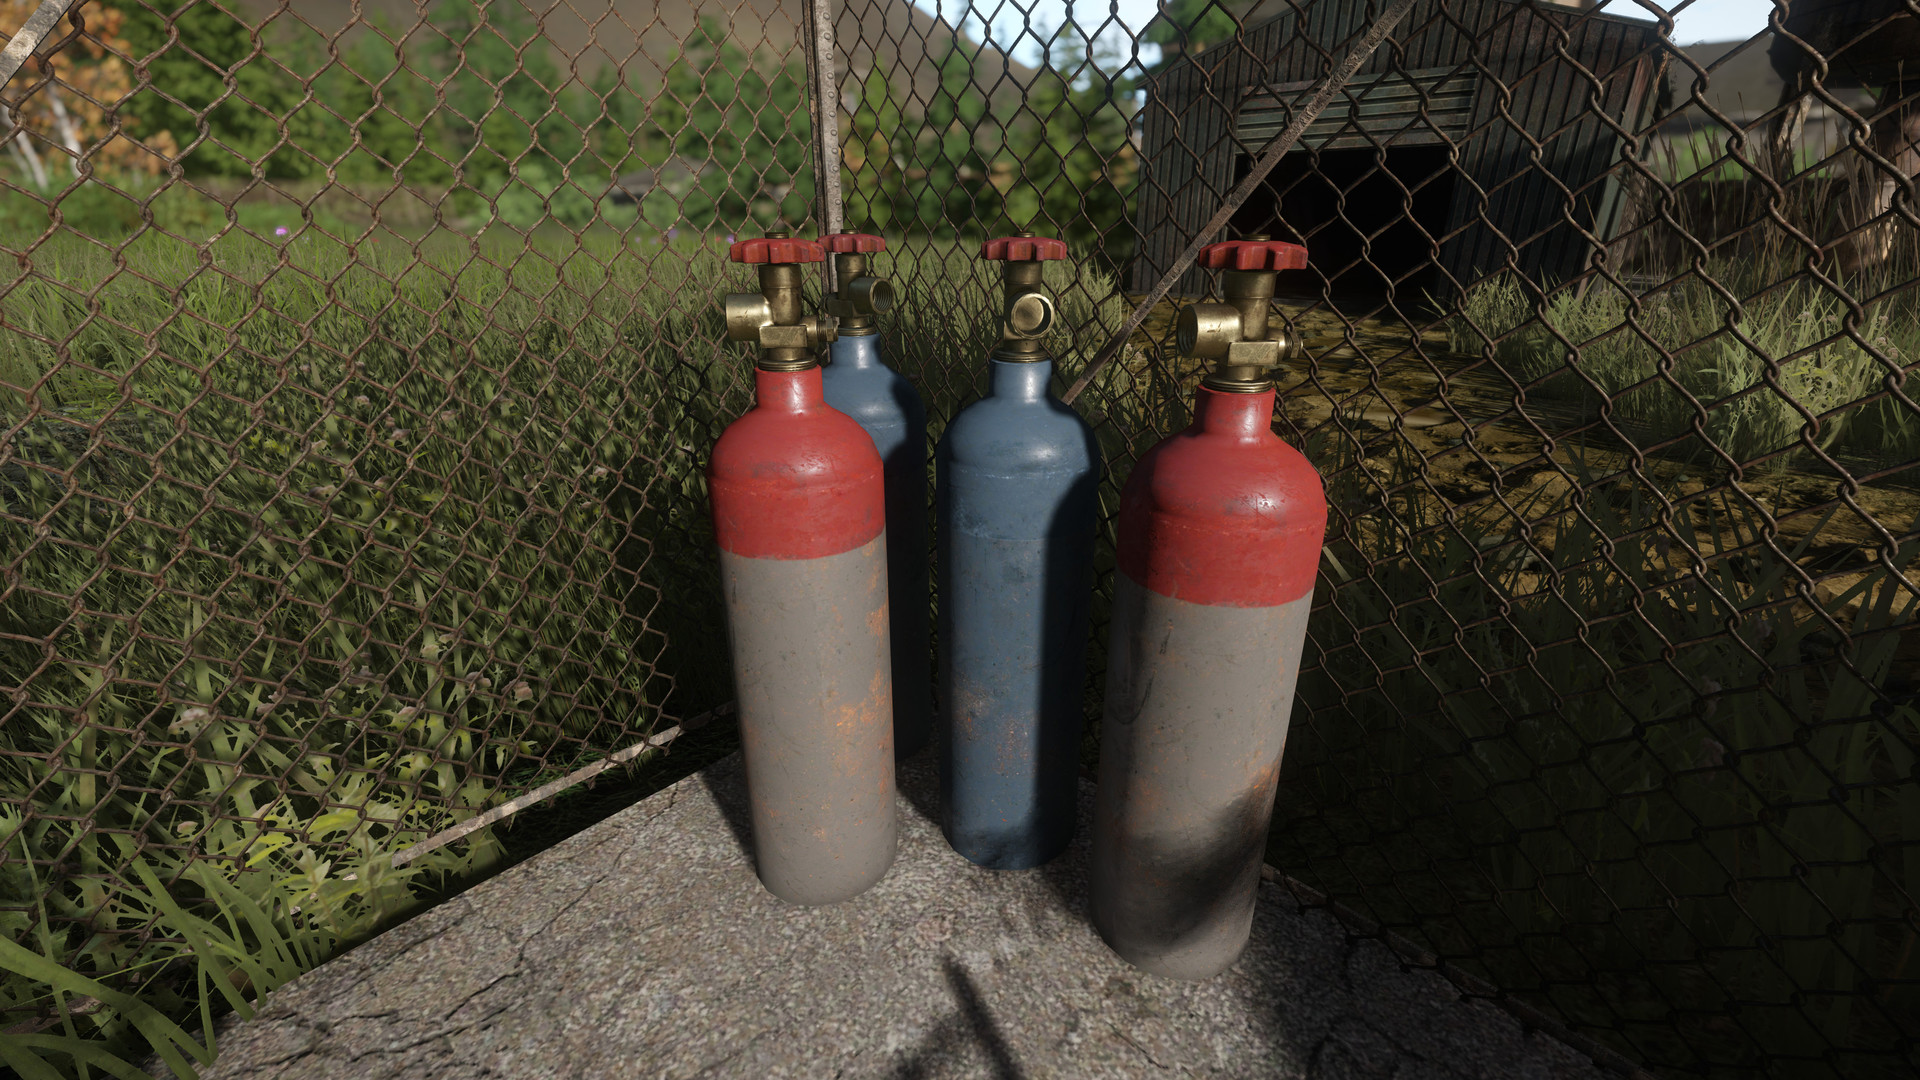 Nitrogen Tanks are used to help fill out industrial areas.